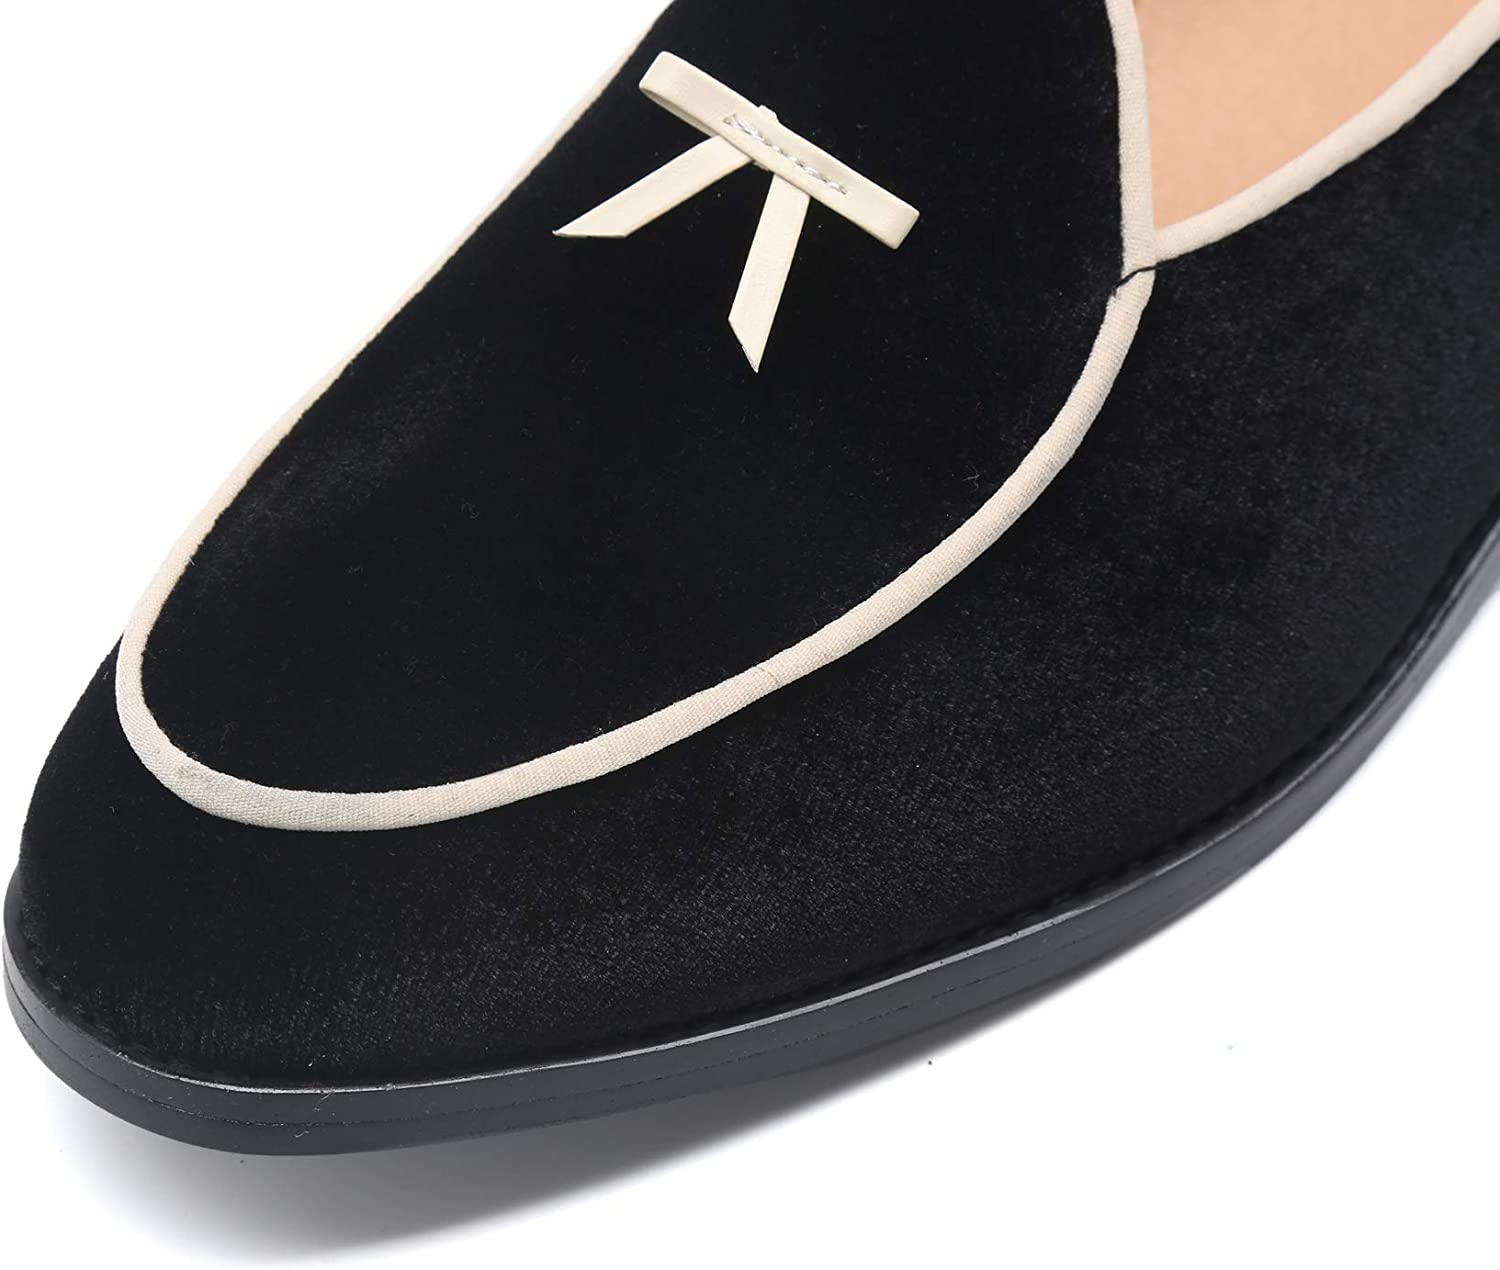 Santimon Boat Shoes Men Penny-Loafers Dress Shoes Smoking-Slippers Casual Bow Velvet Slip-on Flats